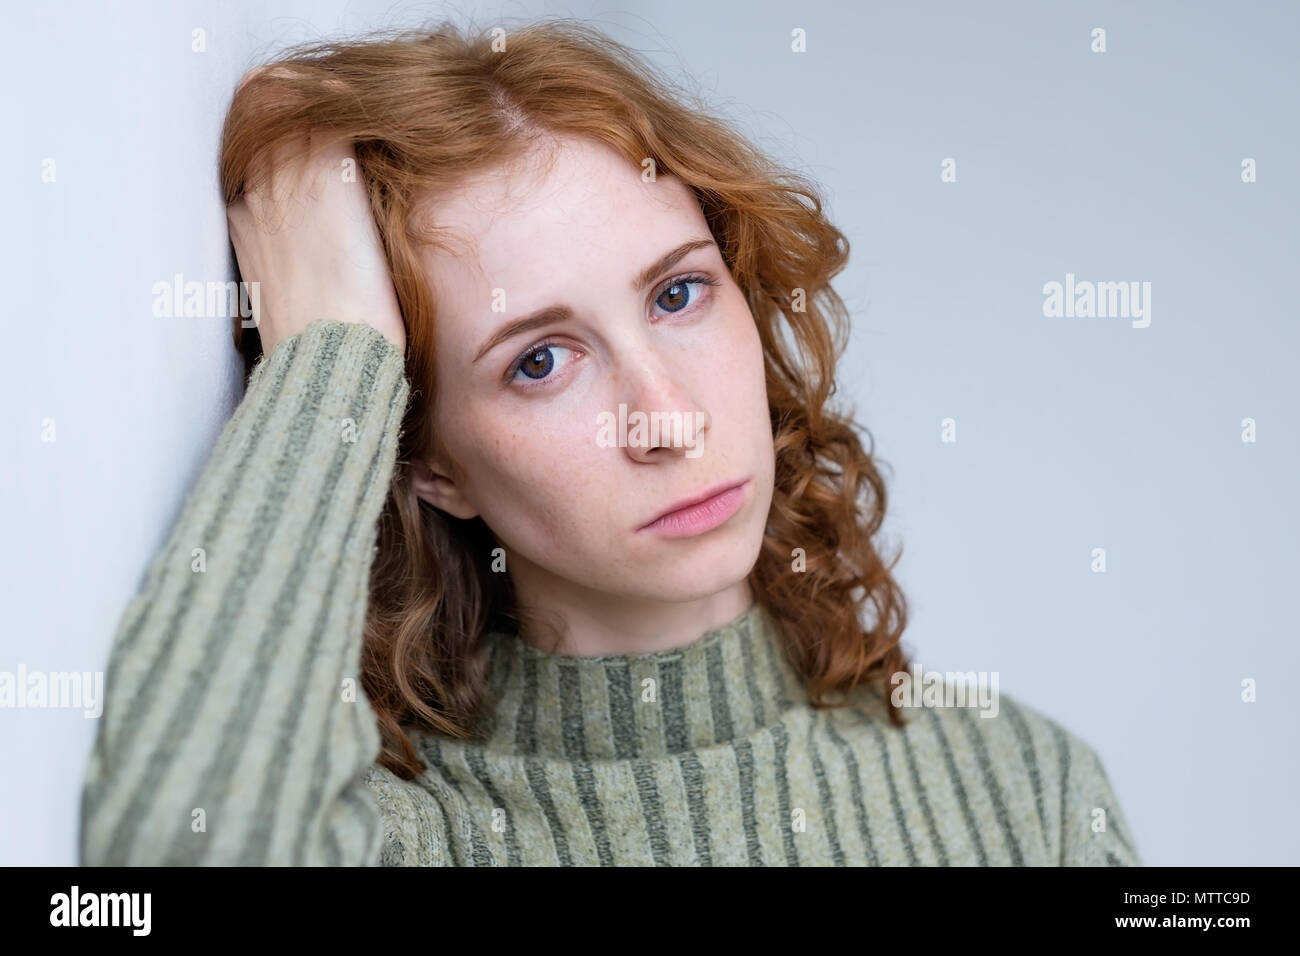 Young disappointed woman with red curly hair - Stock Image